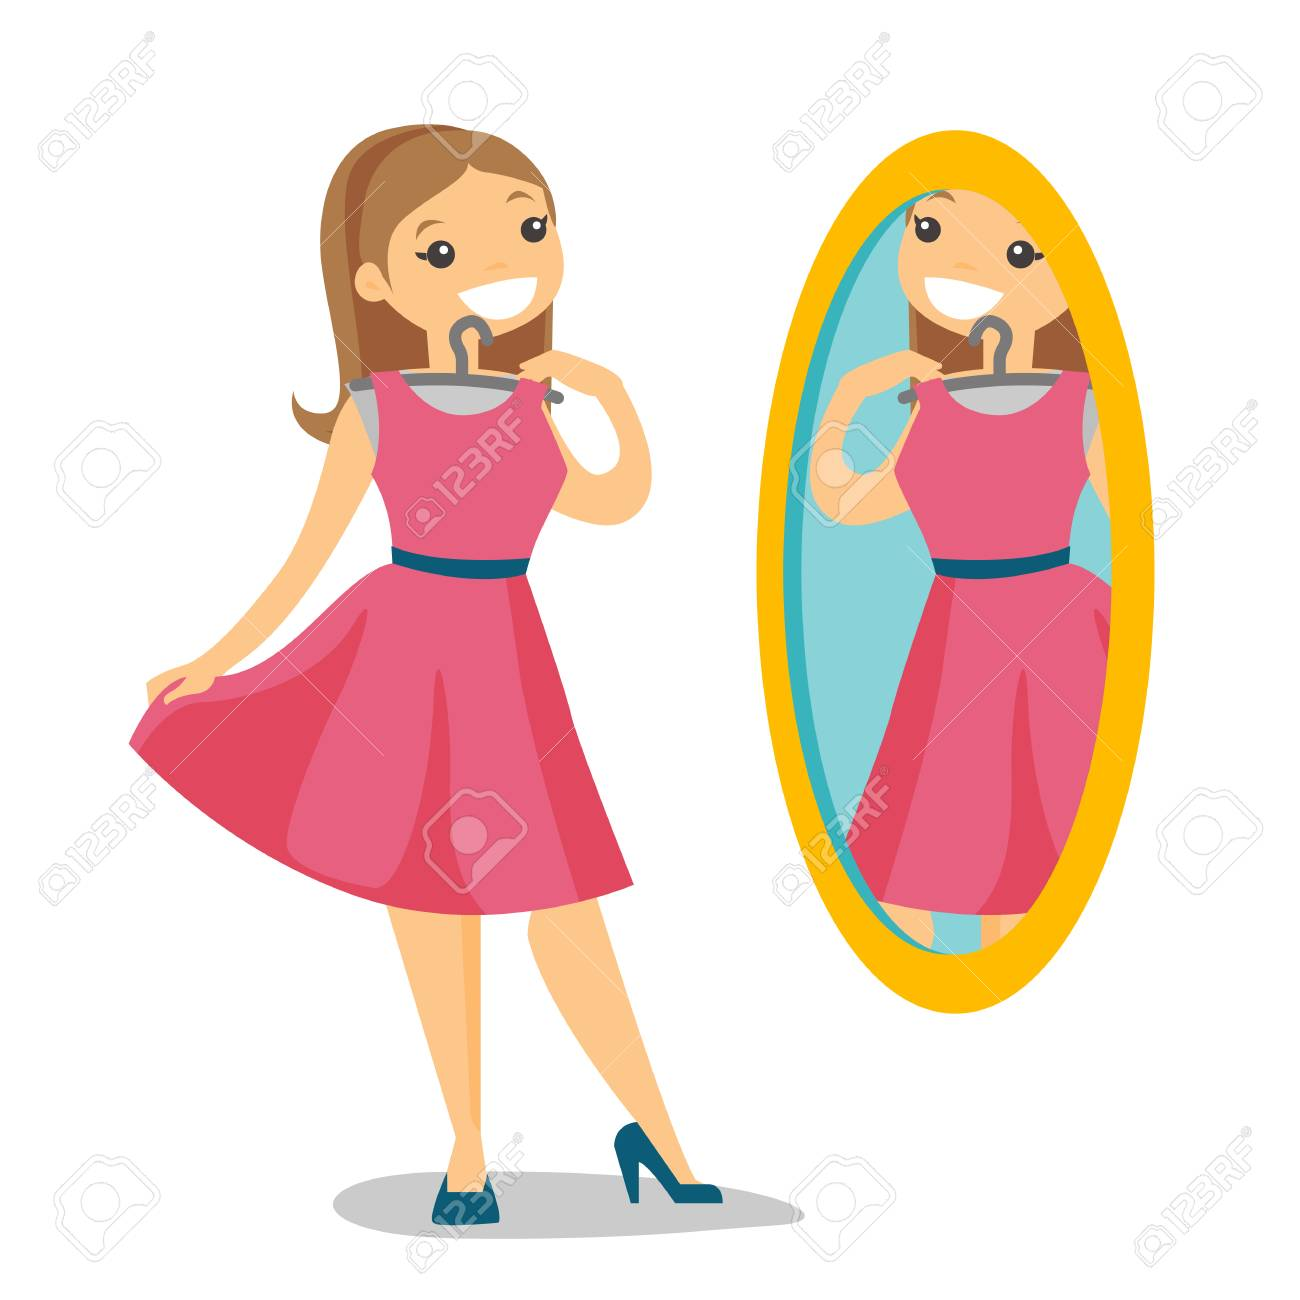 Caucasian White Woman Trying On Dress And Looking At Herself Royalty Free Cliparts Vectors And Stock Illustration Image 104543782